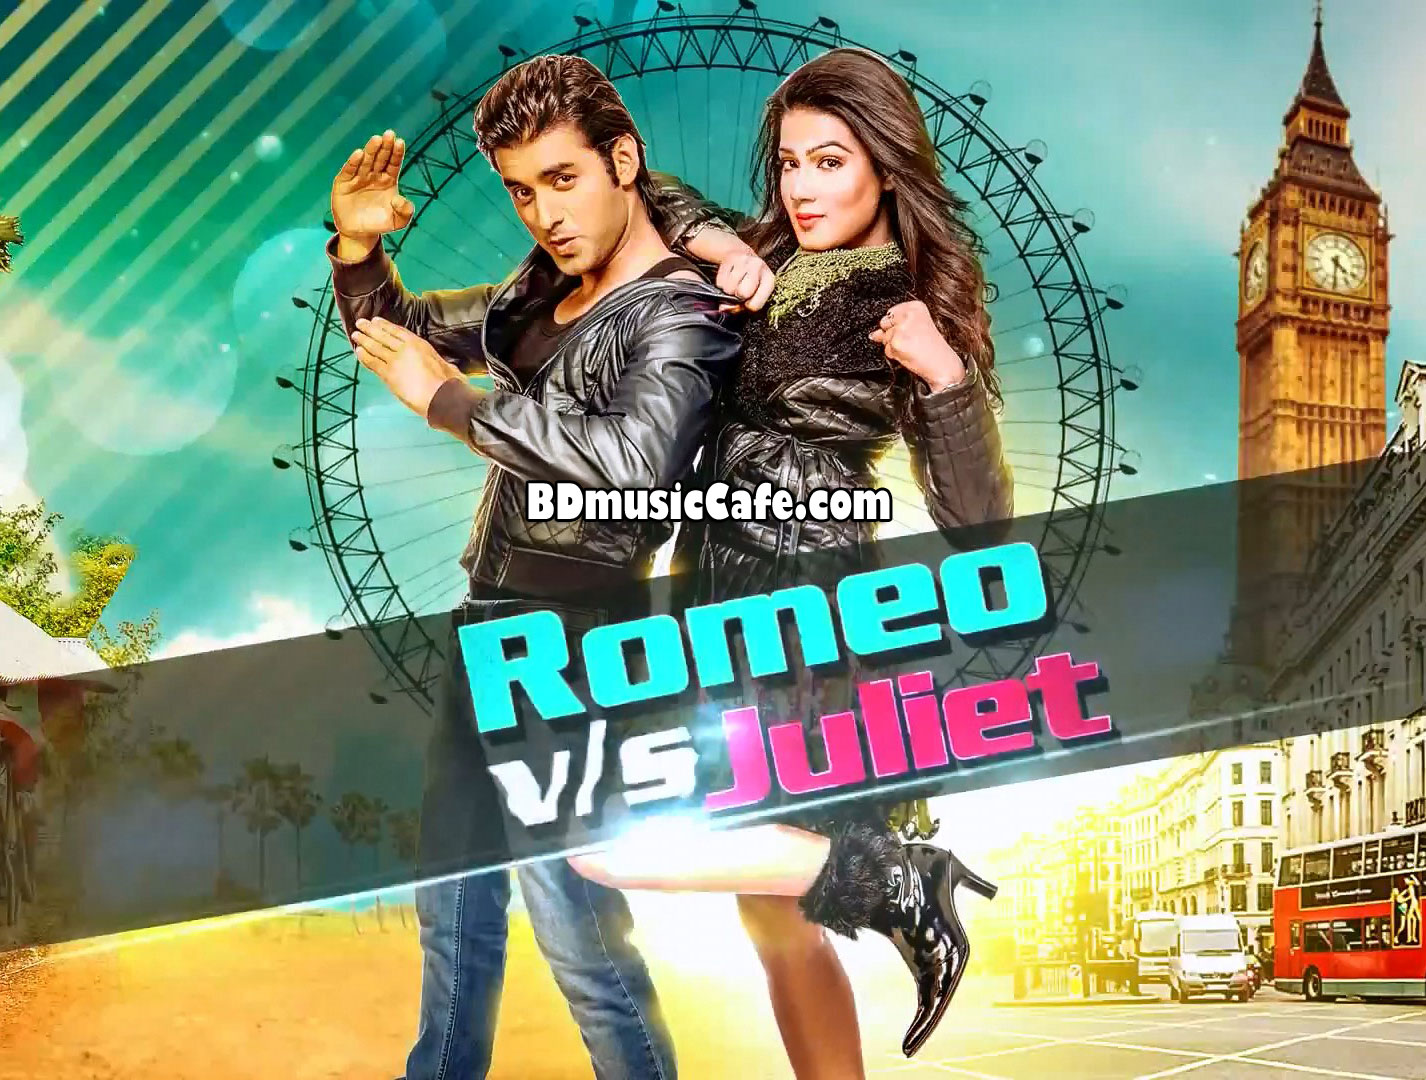 twilight vs romeo and juliet The latest film adaptation of william shakespeare's romeo and juliet it feels a little too much of a piece with the twilight the original romeo & juliet.